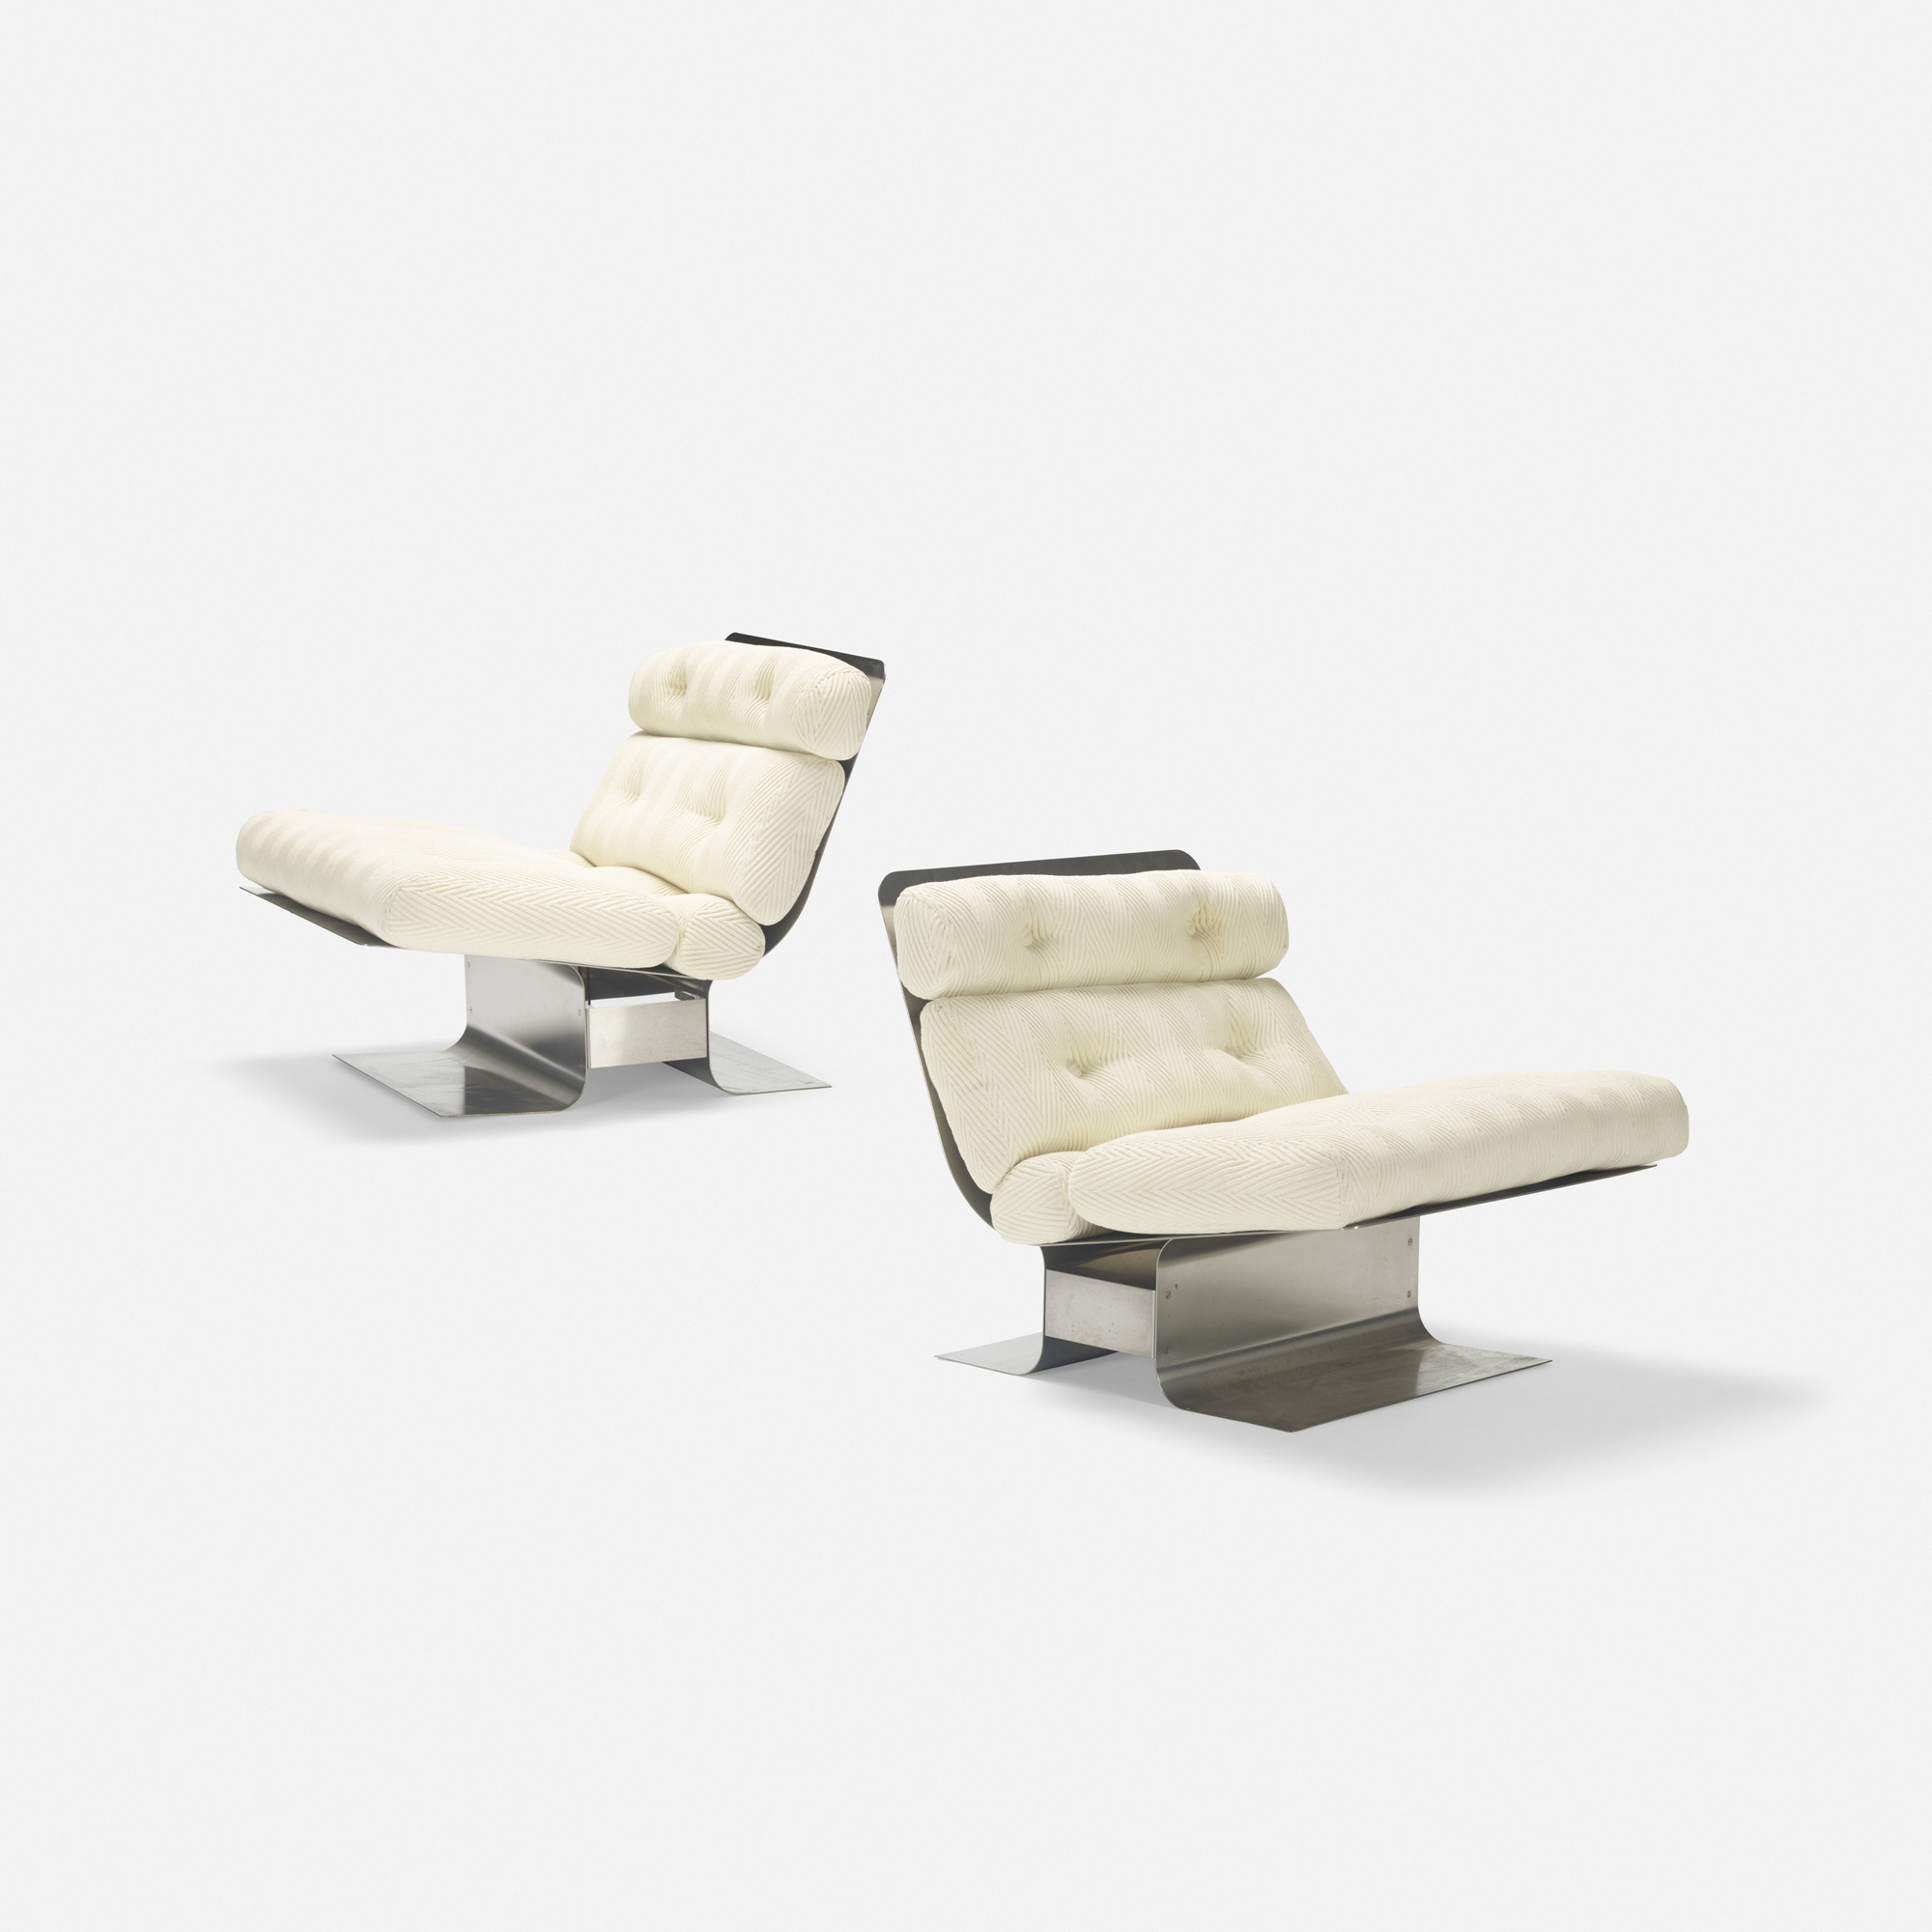 328: François Monnet / lounge chairs, pair (1 of 5)